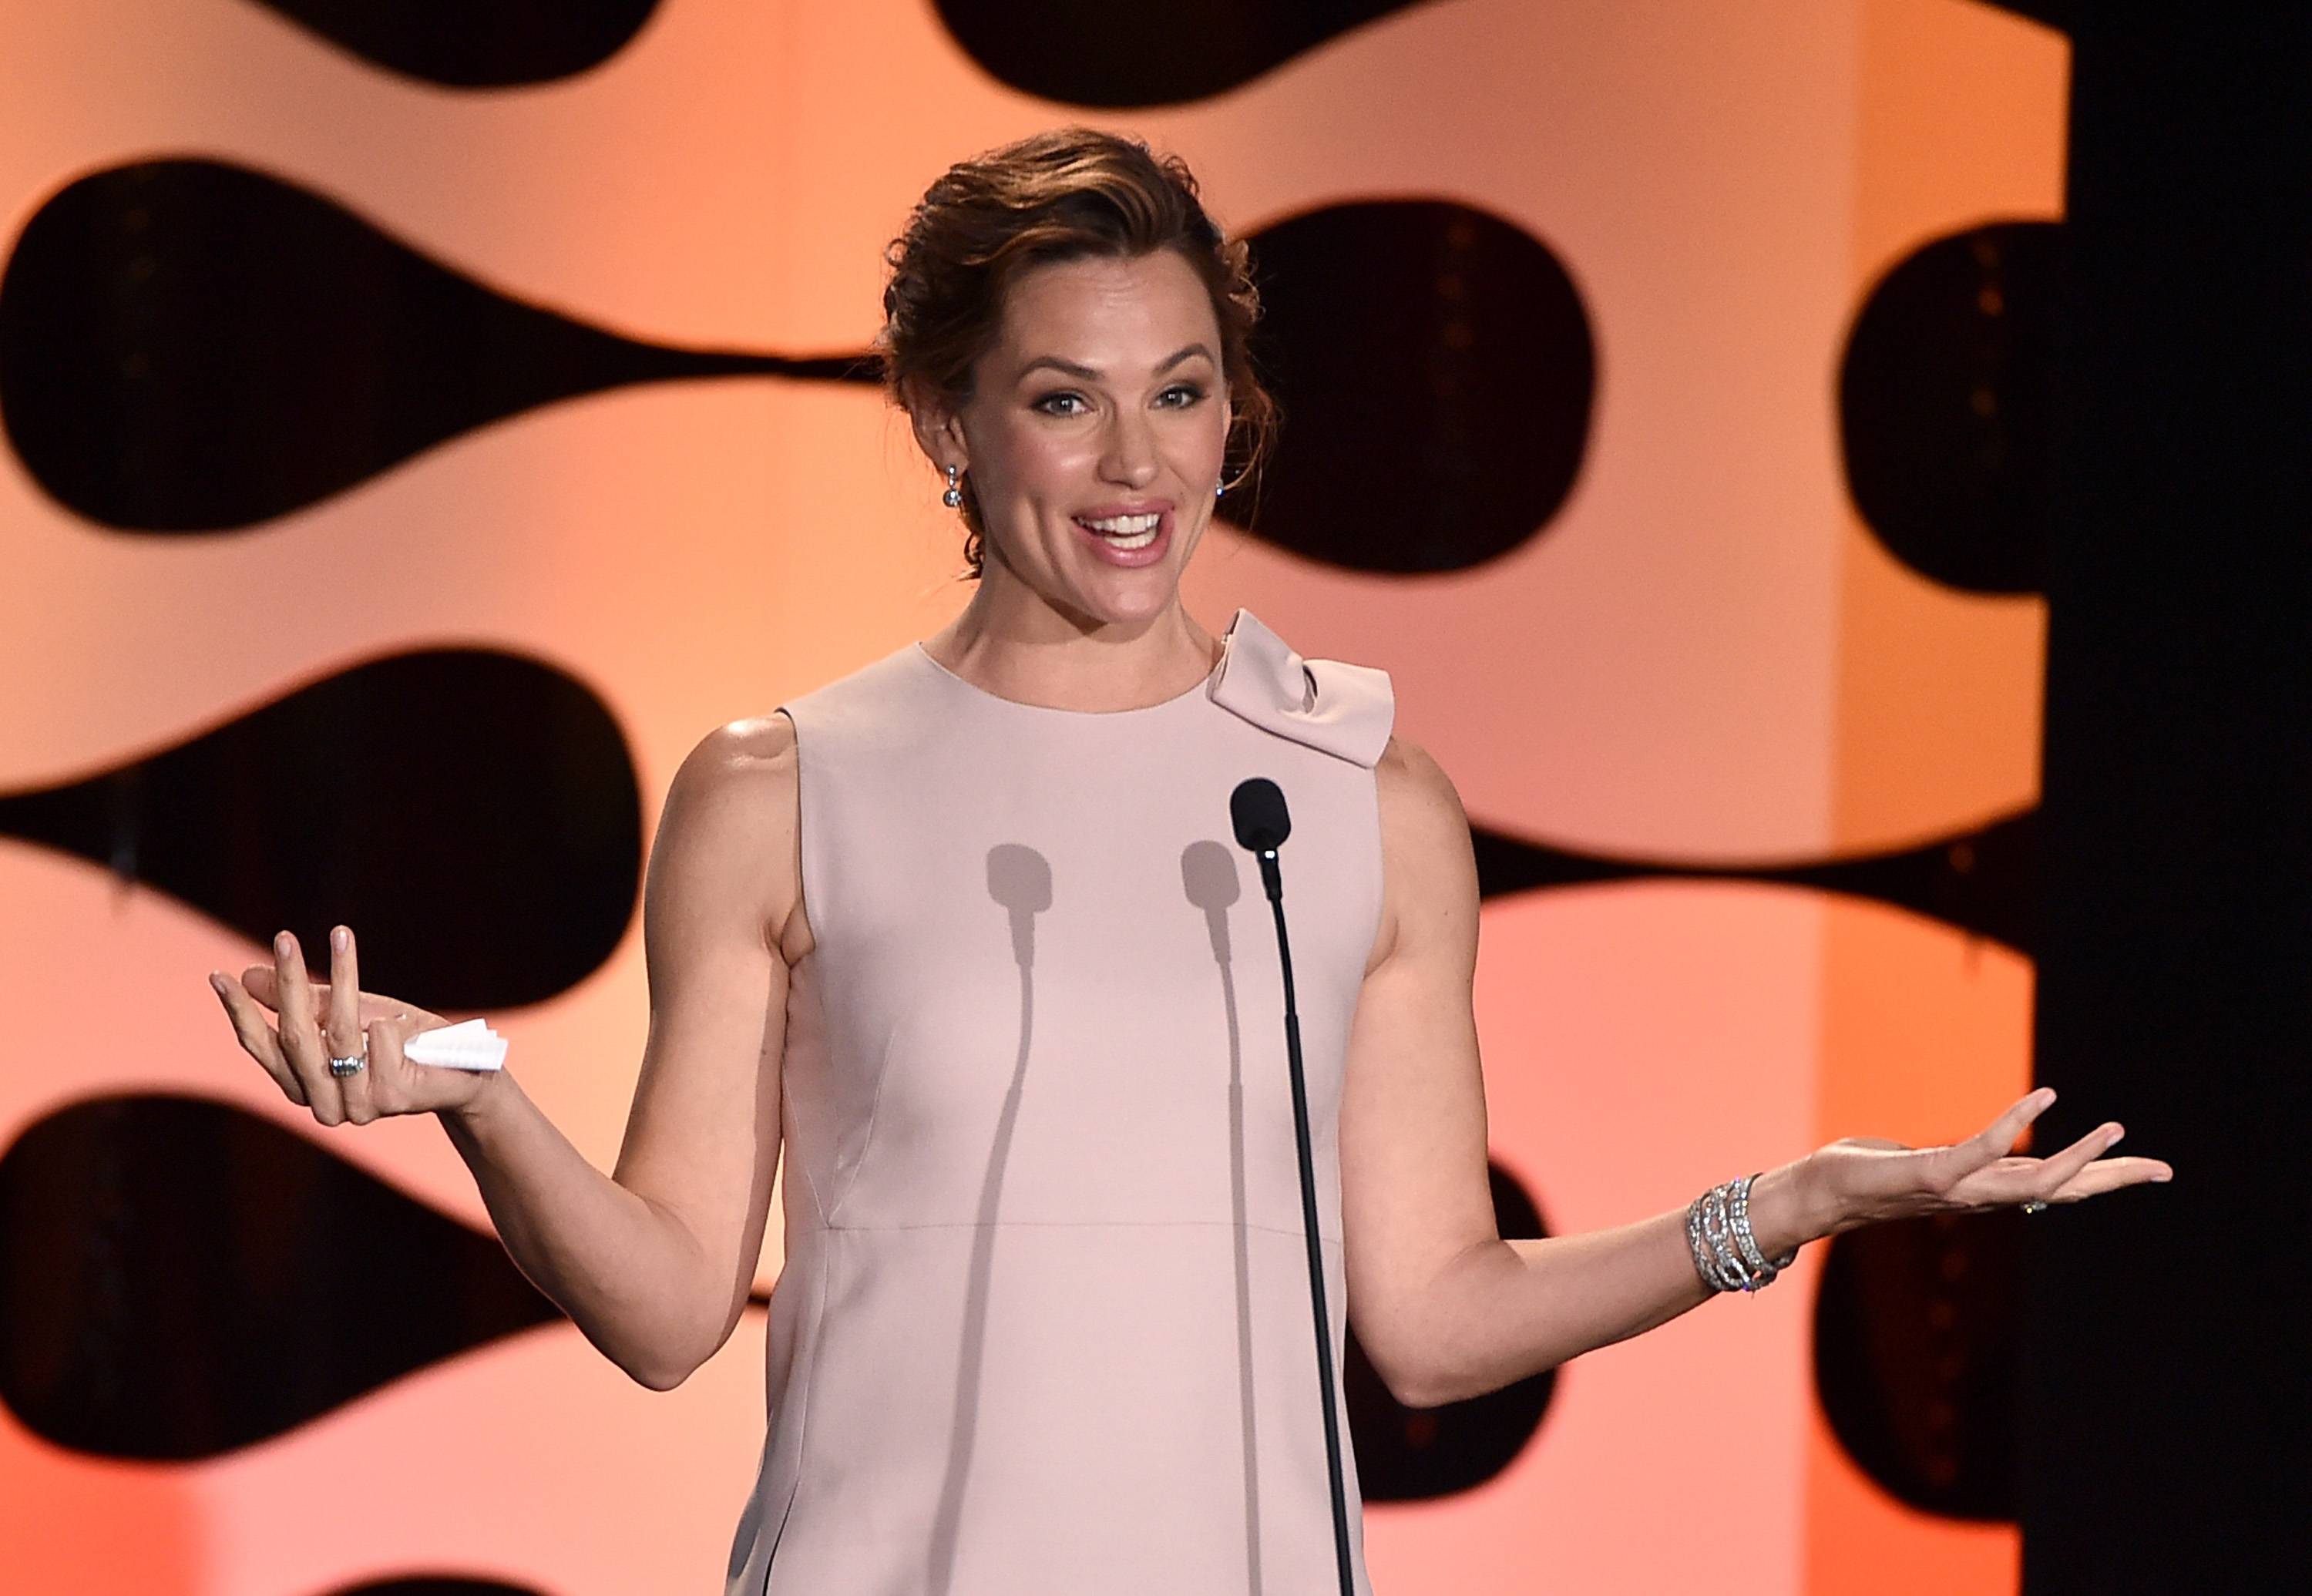 Jennifer Garner Just Got Real About Her And Ben Affleck's Divorce In A New Interview With Vanity Fair